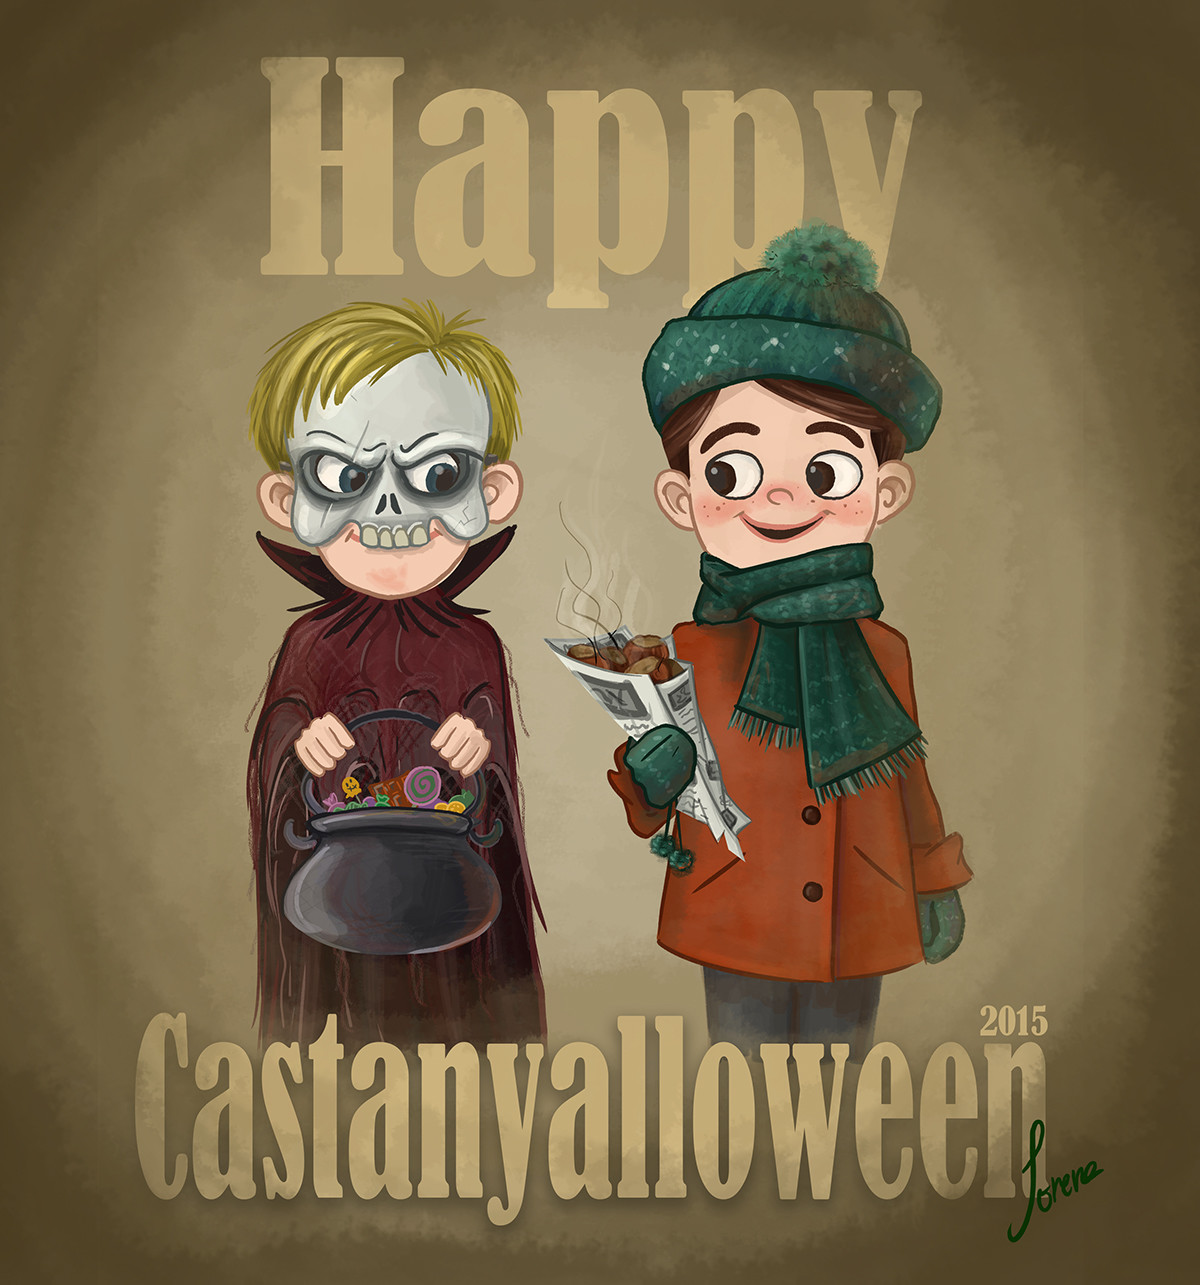 Lorena loguen happy castanyalloween by lorena loguen